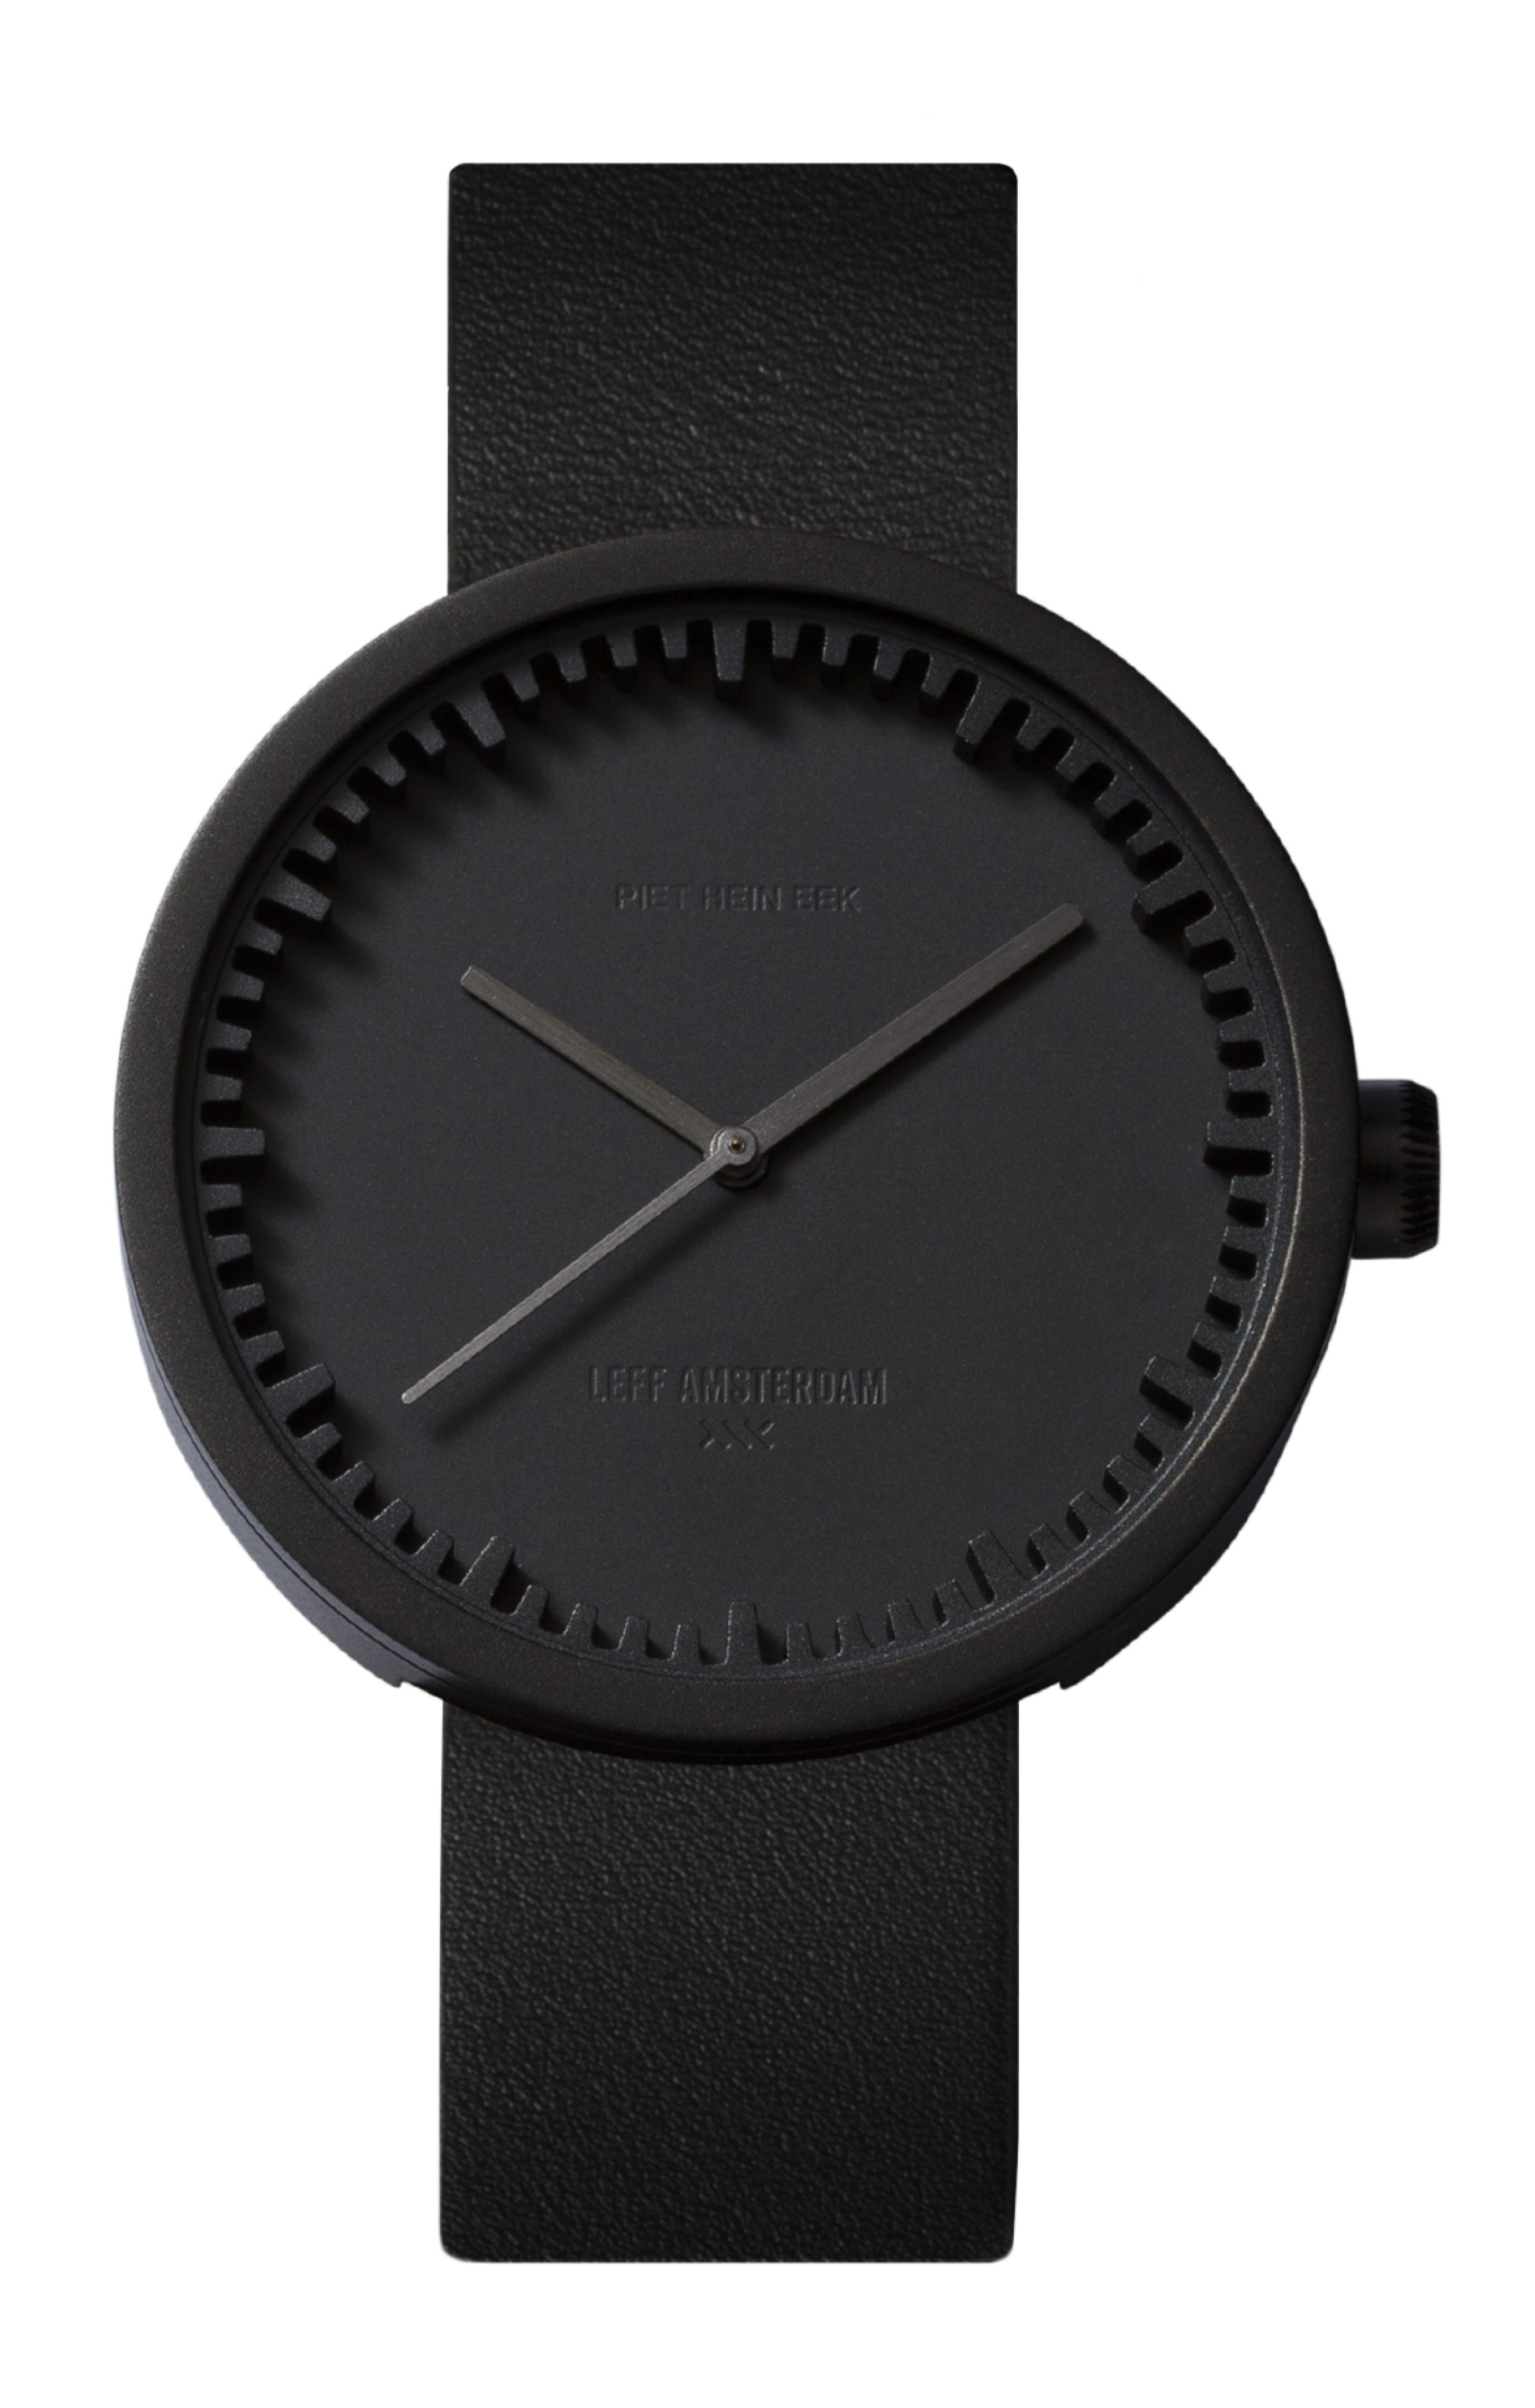 1) D42 black case black leather strap tube watch leff amsterdam design by piet hein eek_front